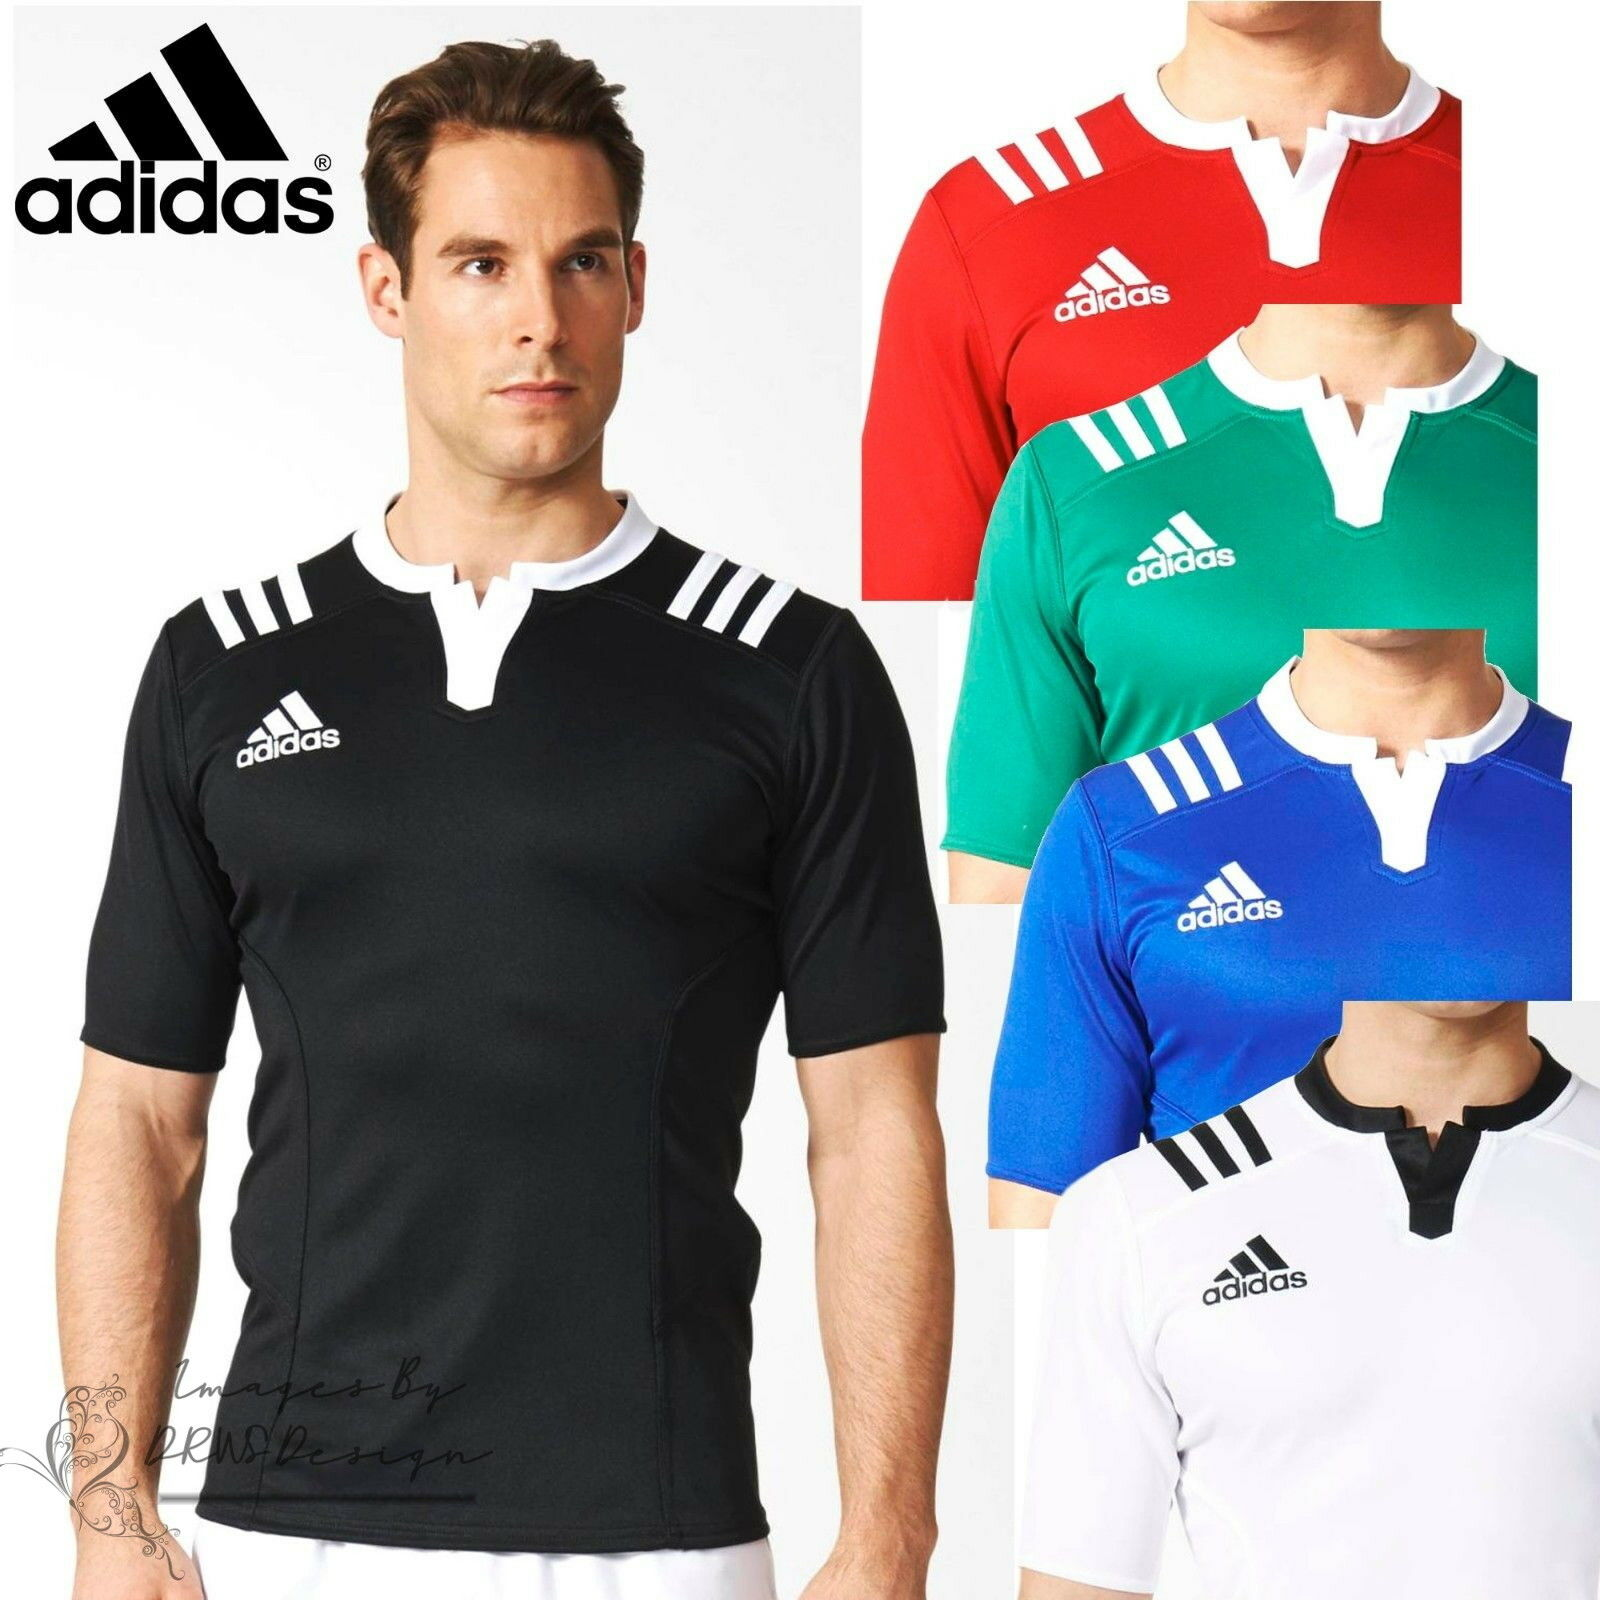 adidas 3 Stripe Mens Green Fitted Rugby Jerseys Team Sport Football T-Shirt Top